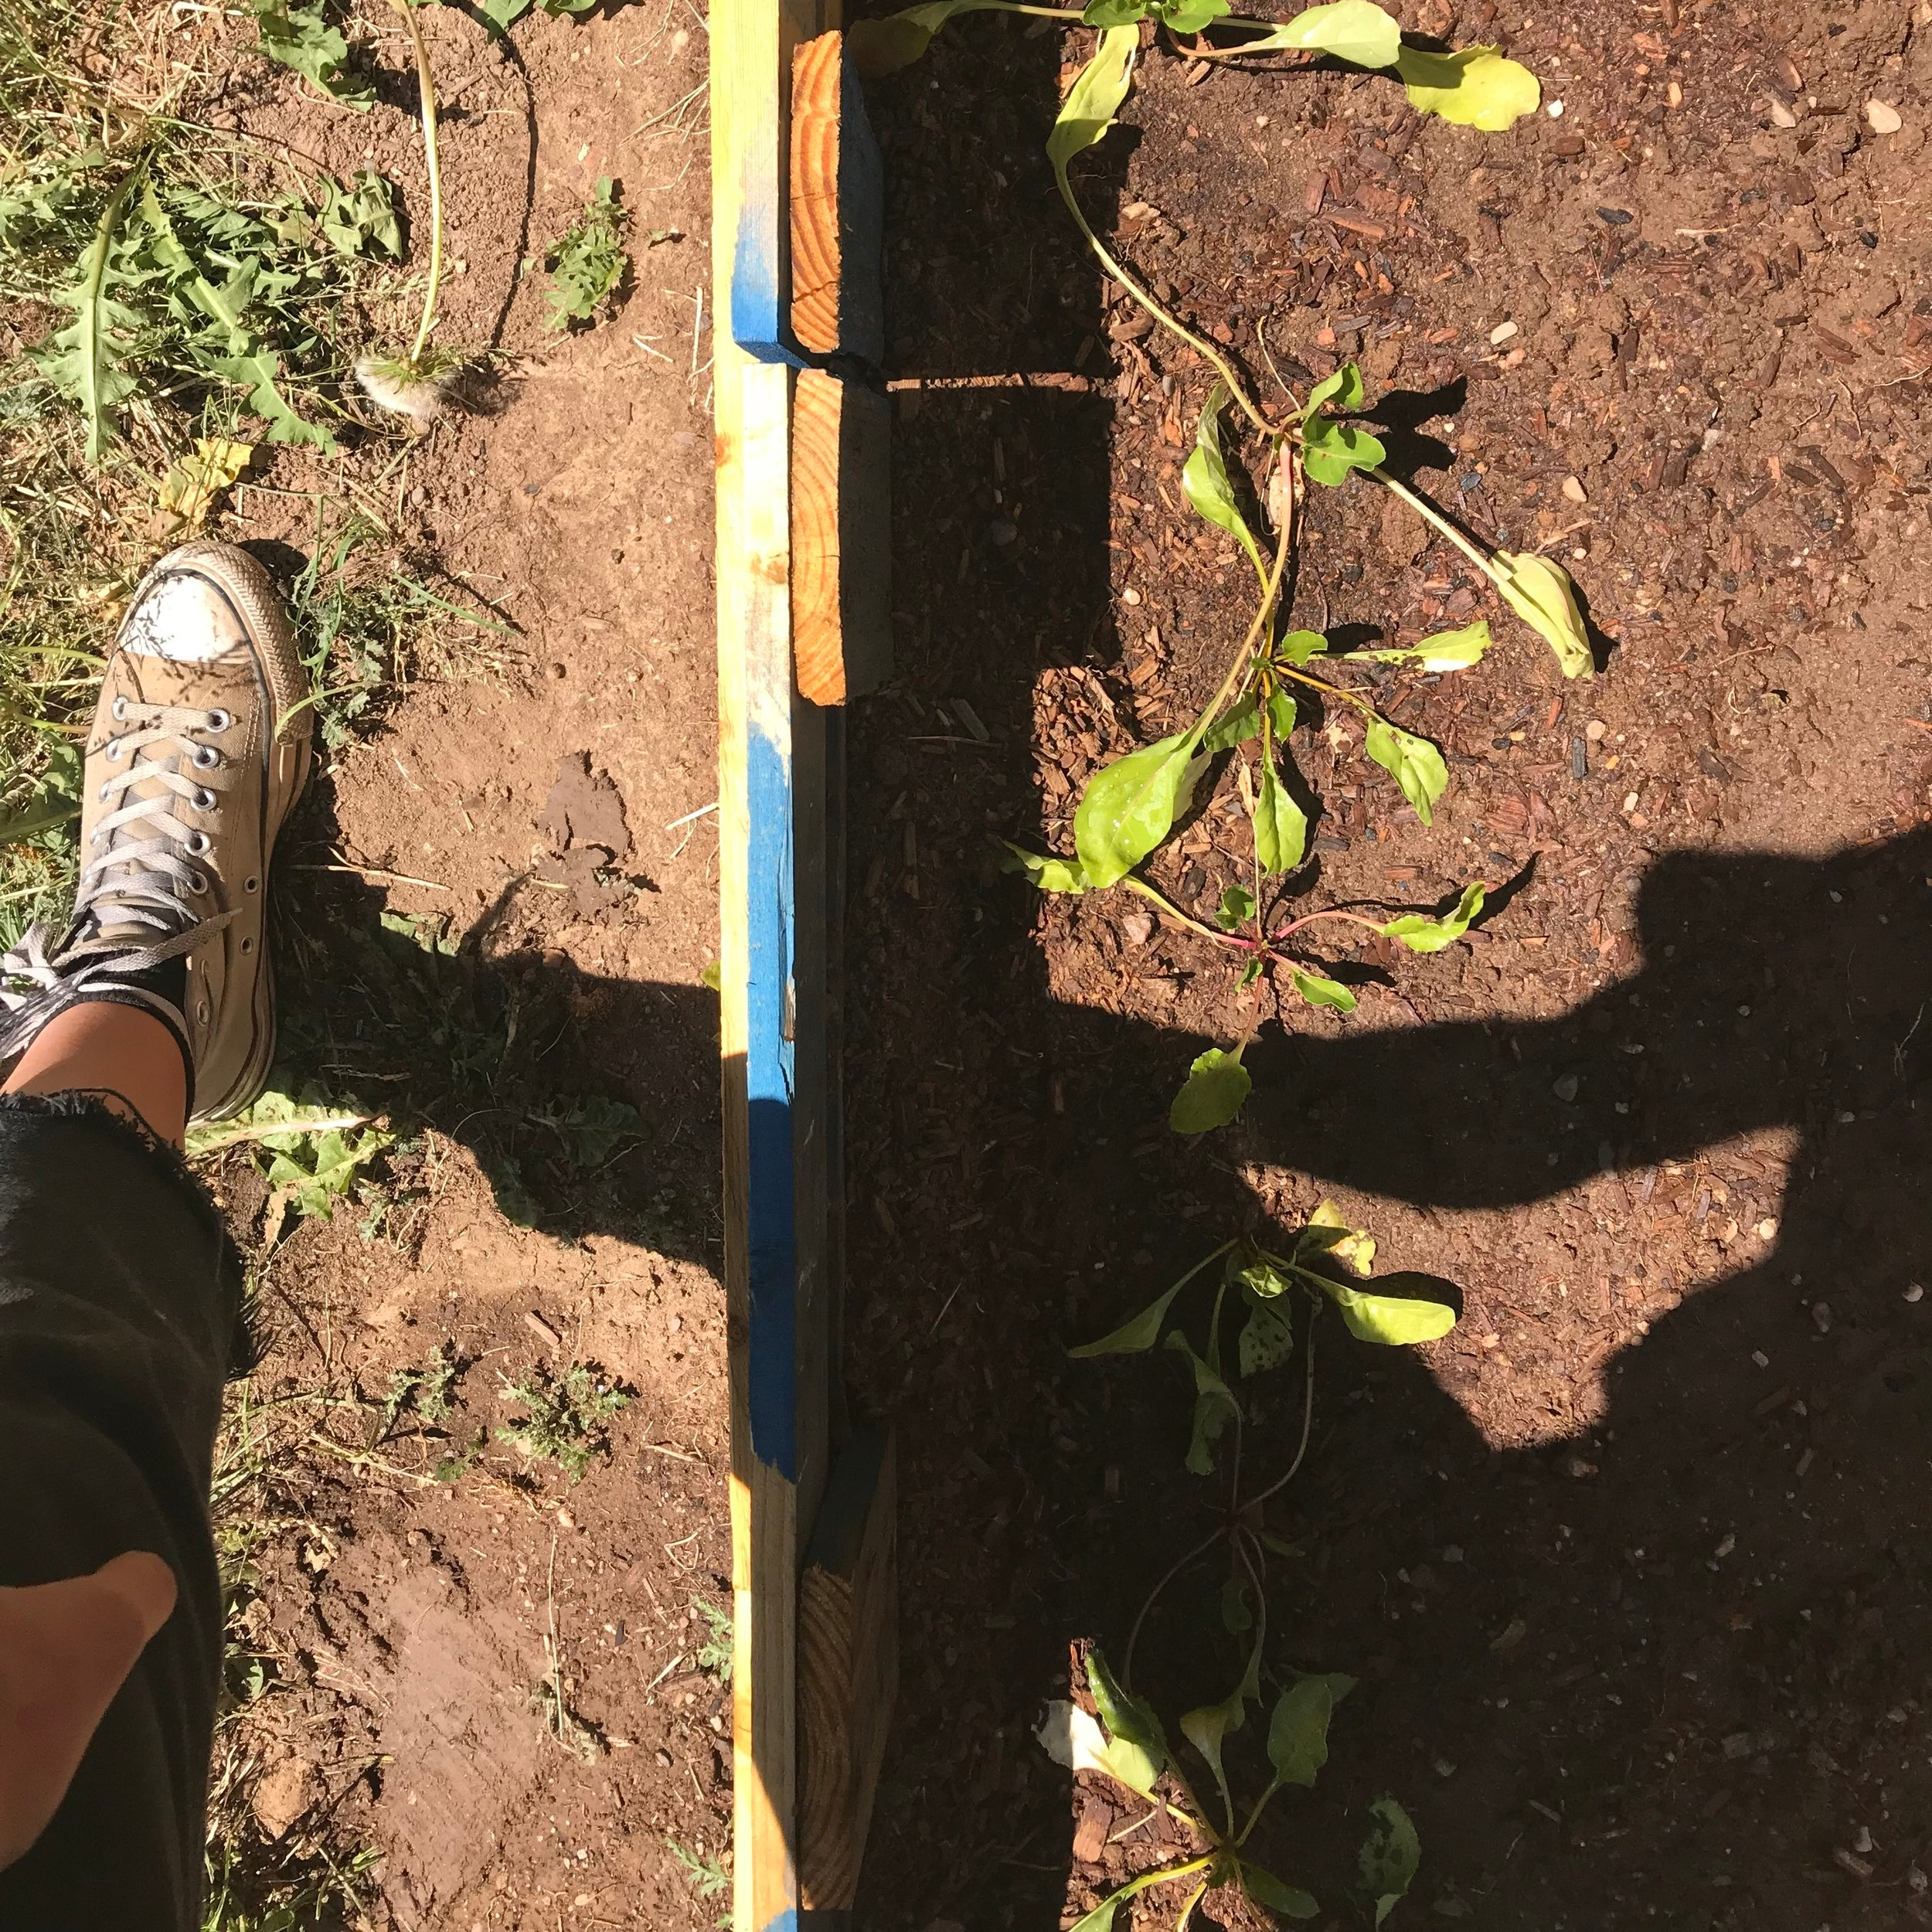 On the left — sad soil. On the right — happy soil filled with compost. All that's left to do is mulch!